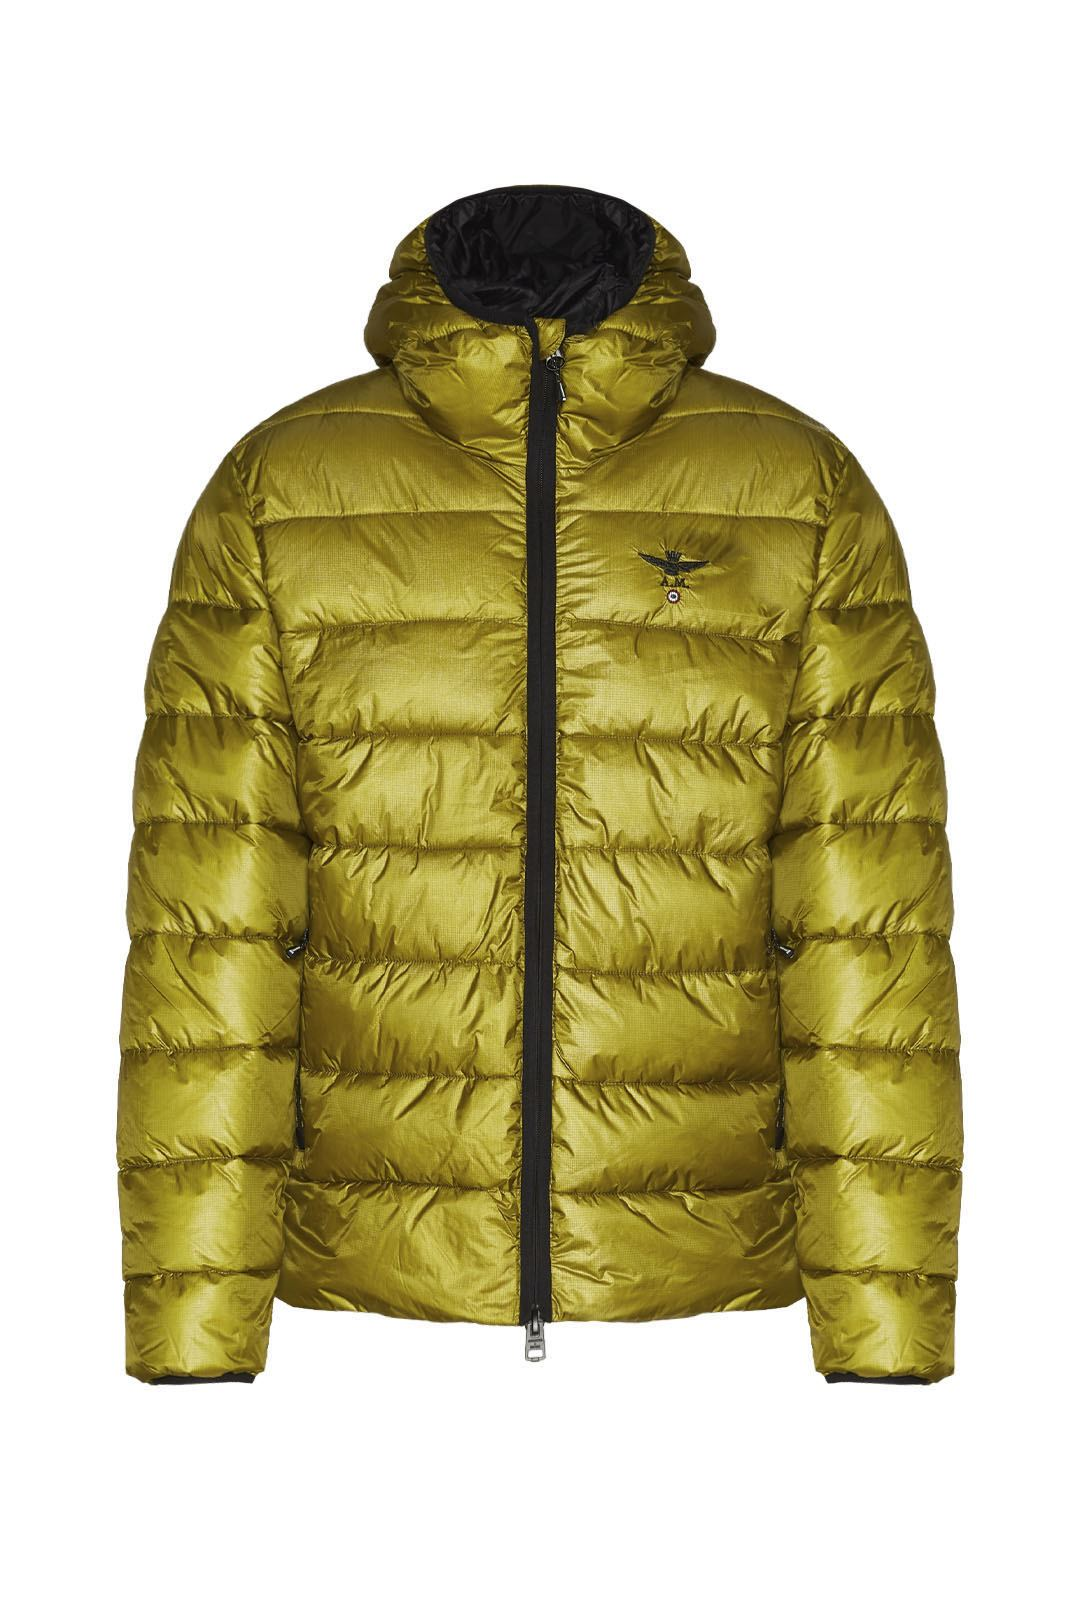 Padded jacket with ripstop fabric